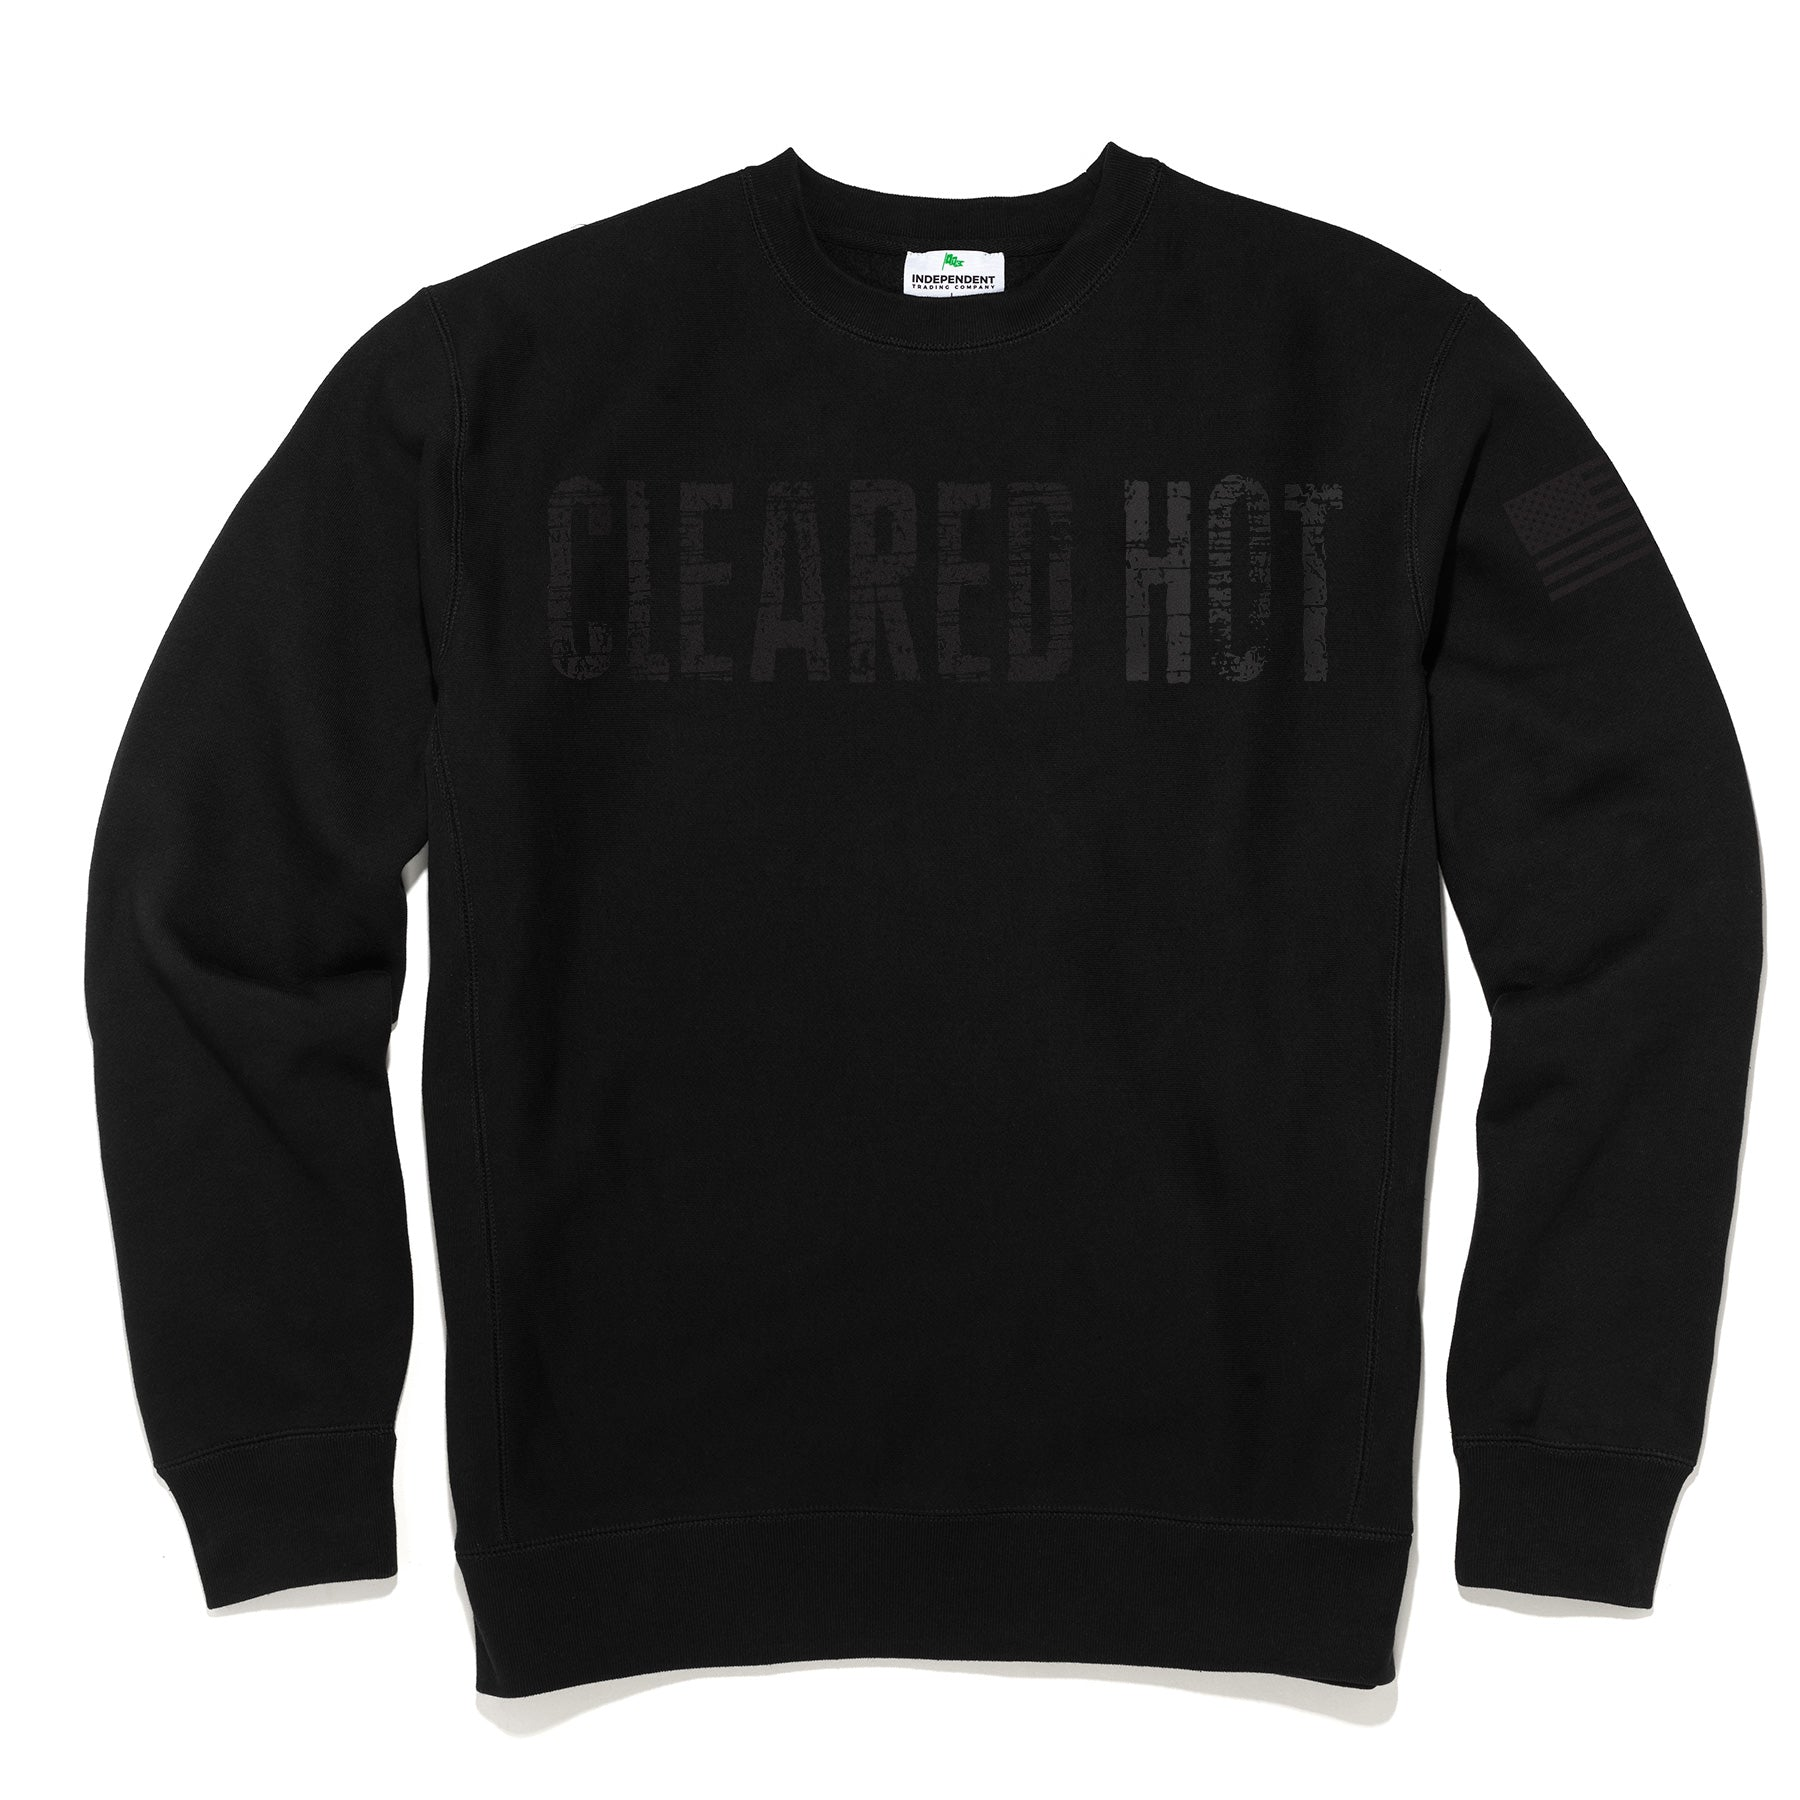 Cleared Hot Sweatshirt - Black